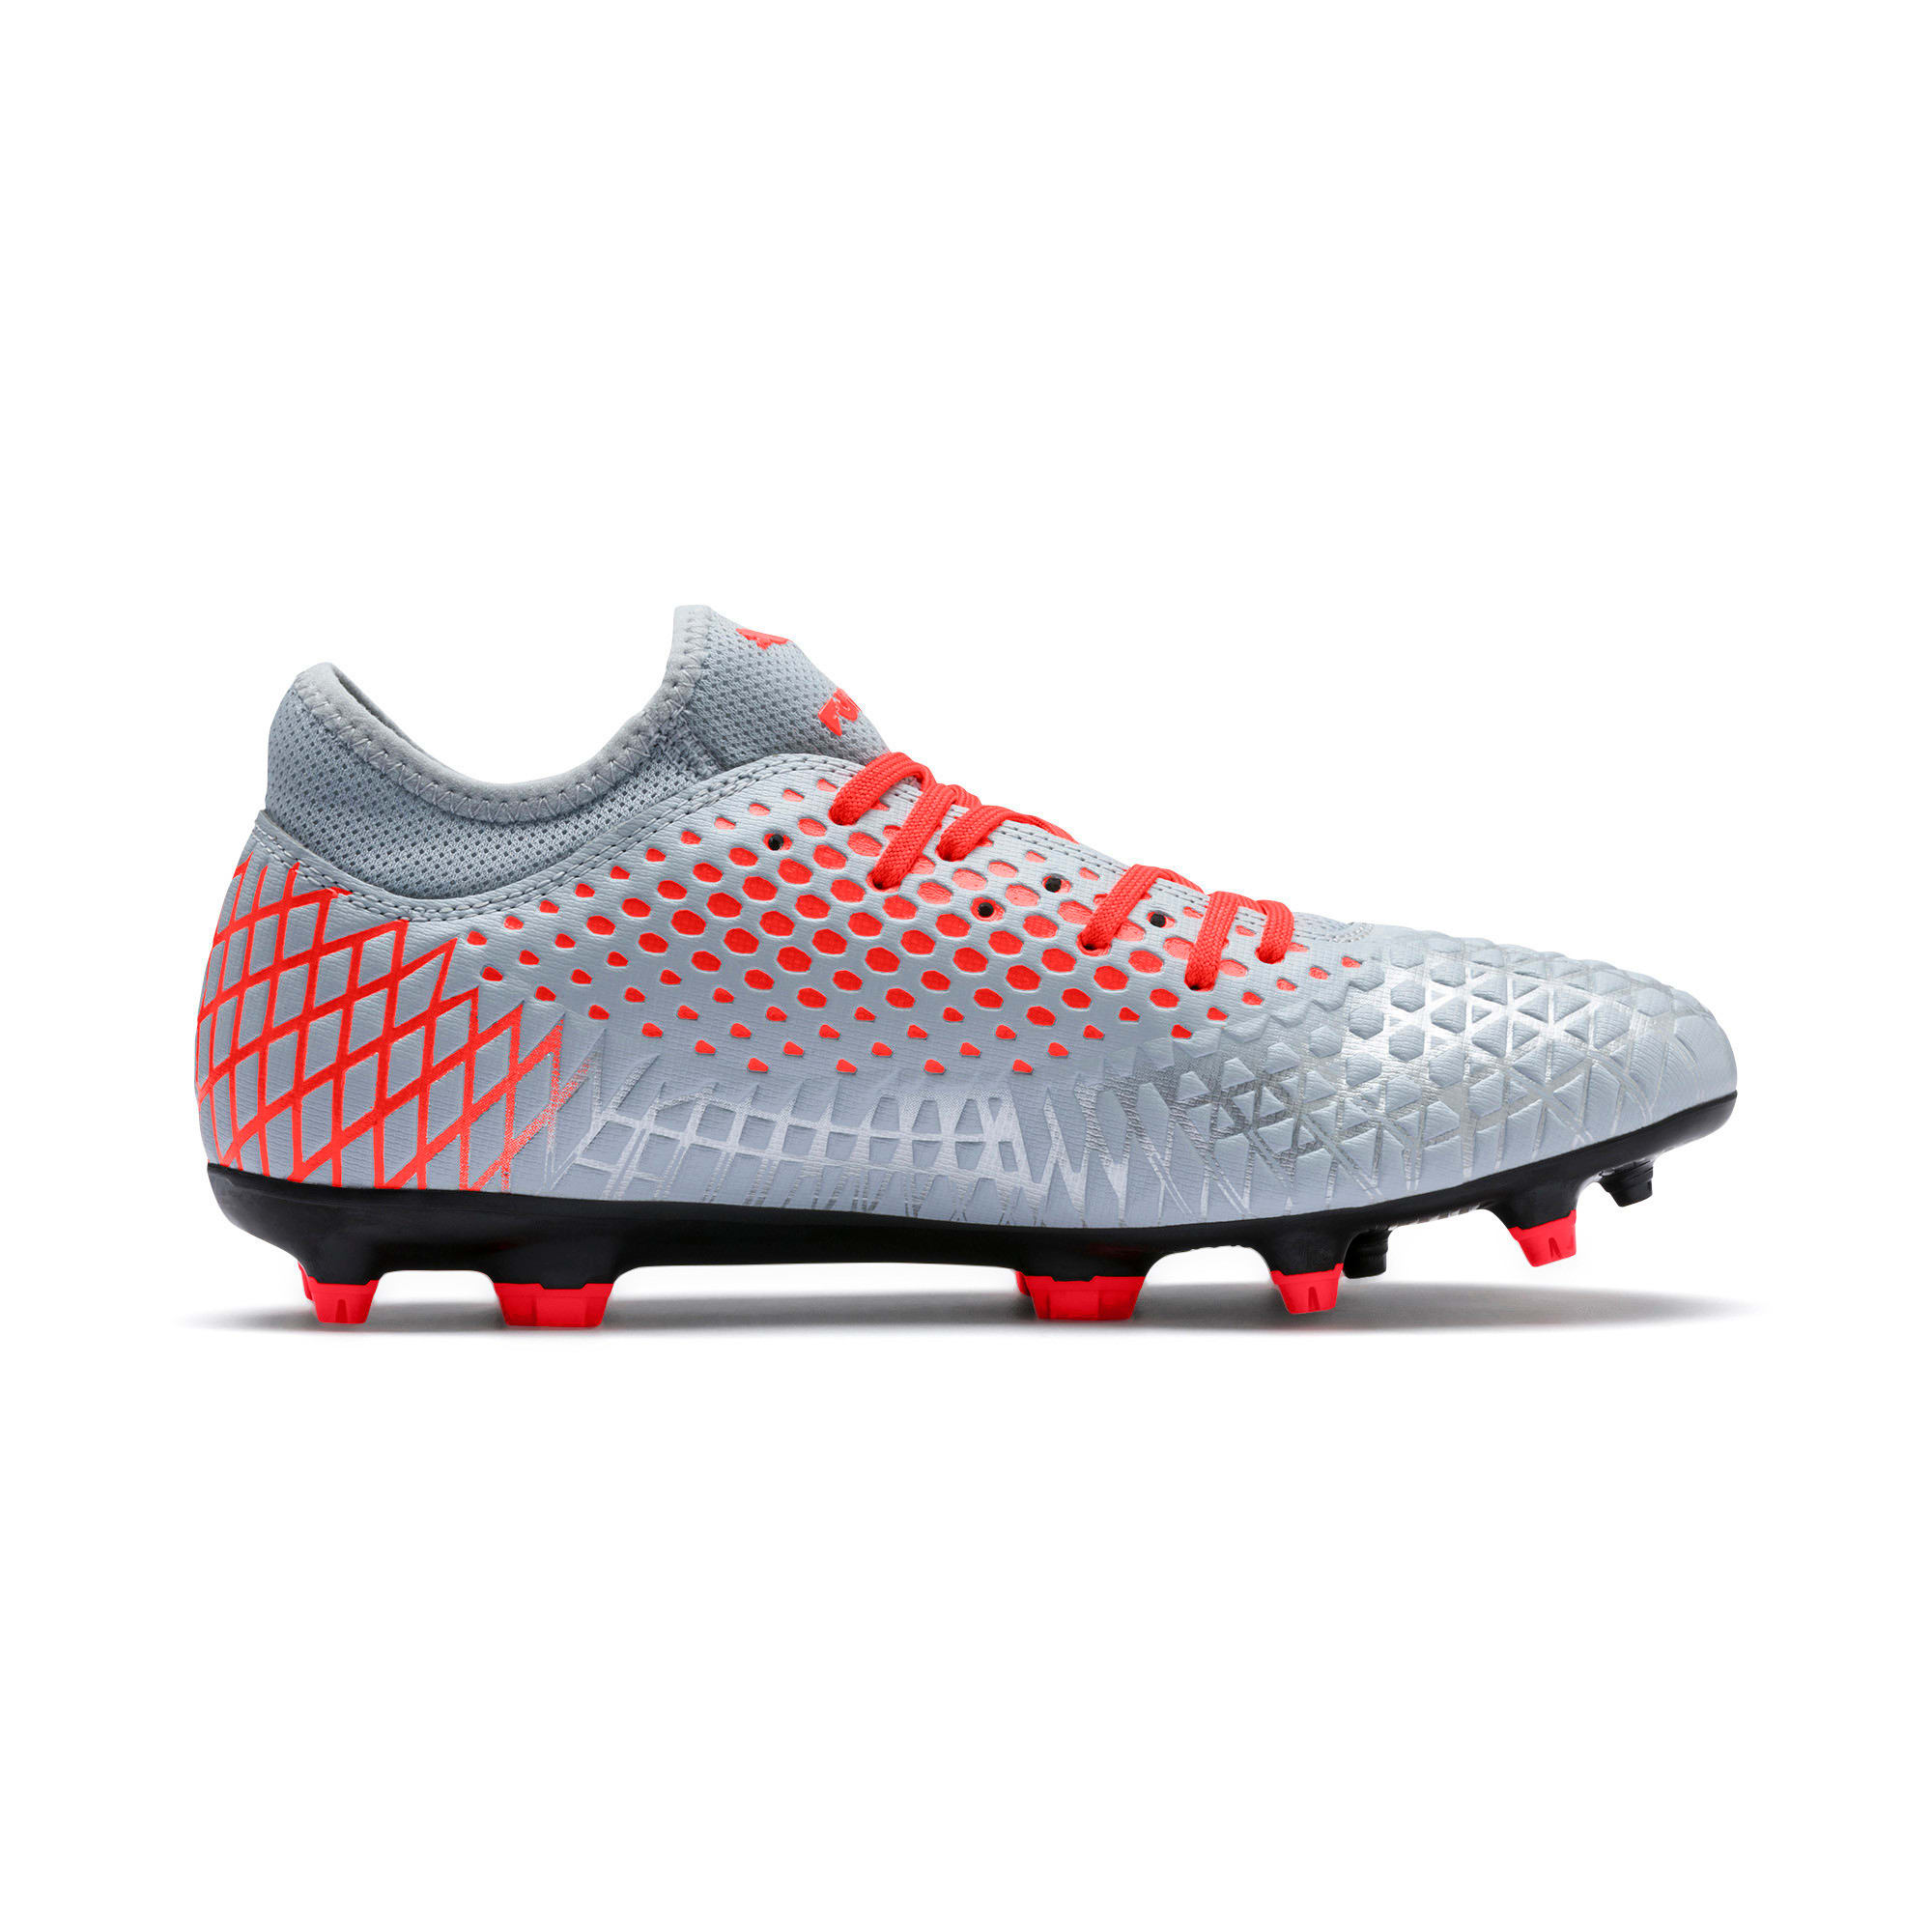 Thumbnail 7 of FUTURE 4.4 FG/AG Men's Football Boots, Glacial Blue-Nrgy Red, medium-IND